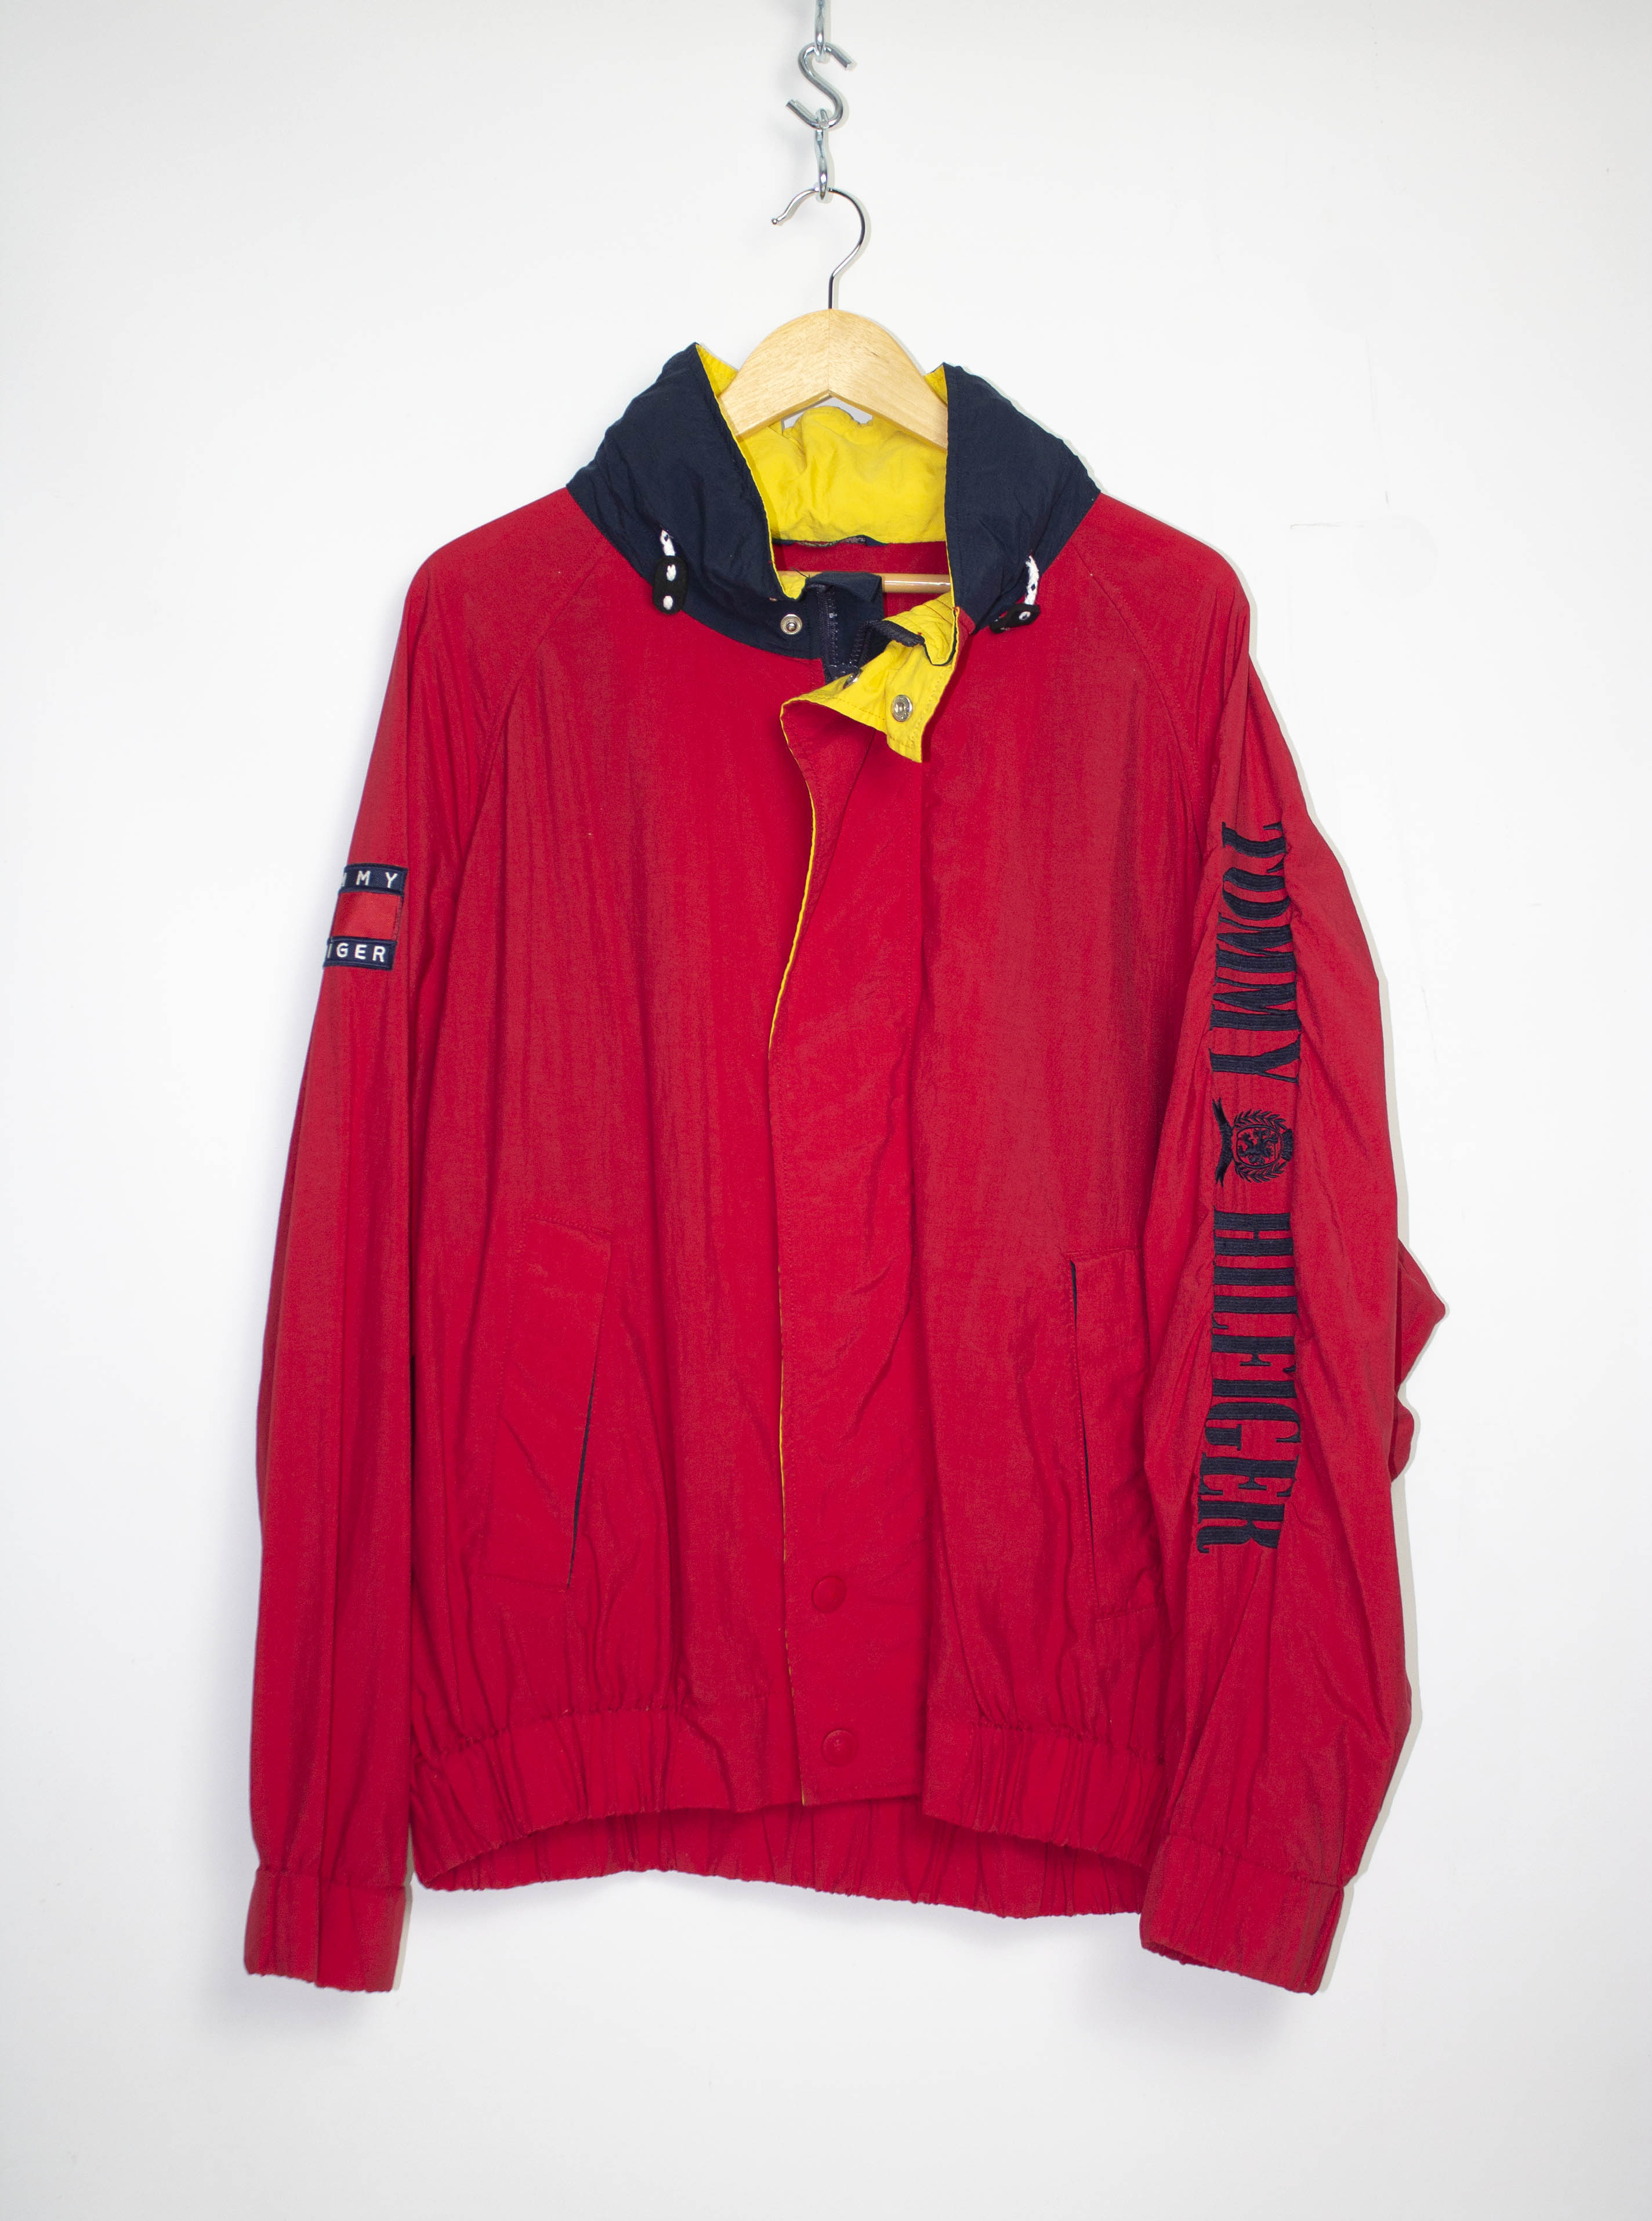 Vintage Tommy Hilfiger Hooded Jacket Sz XL